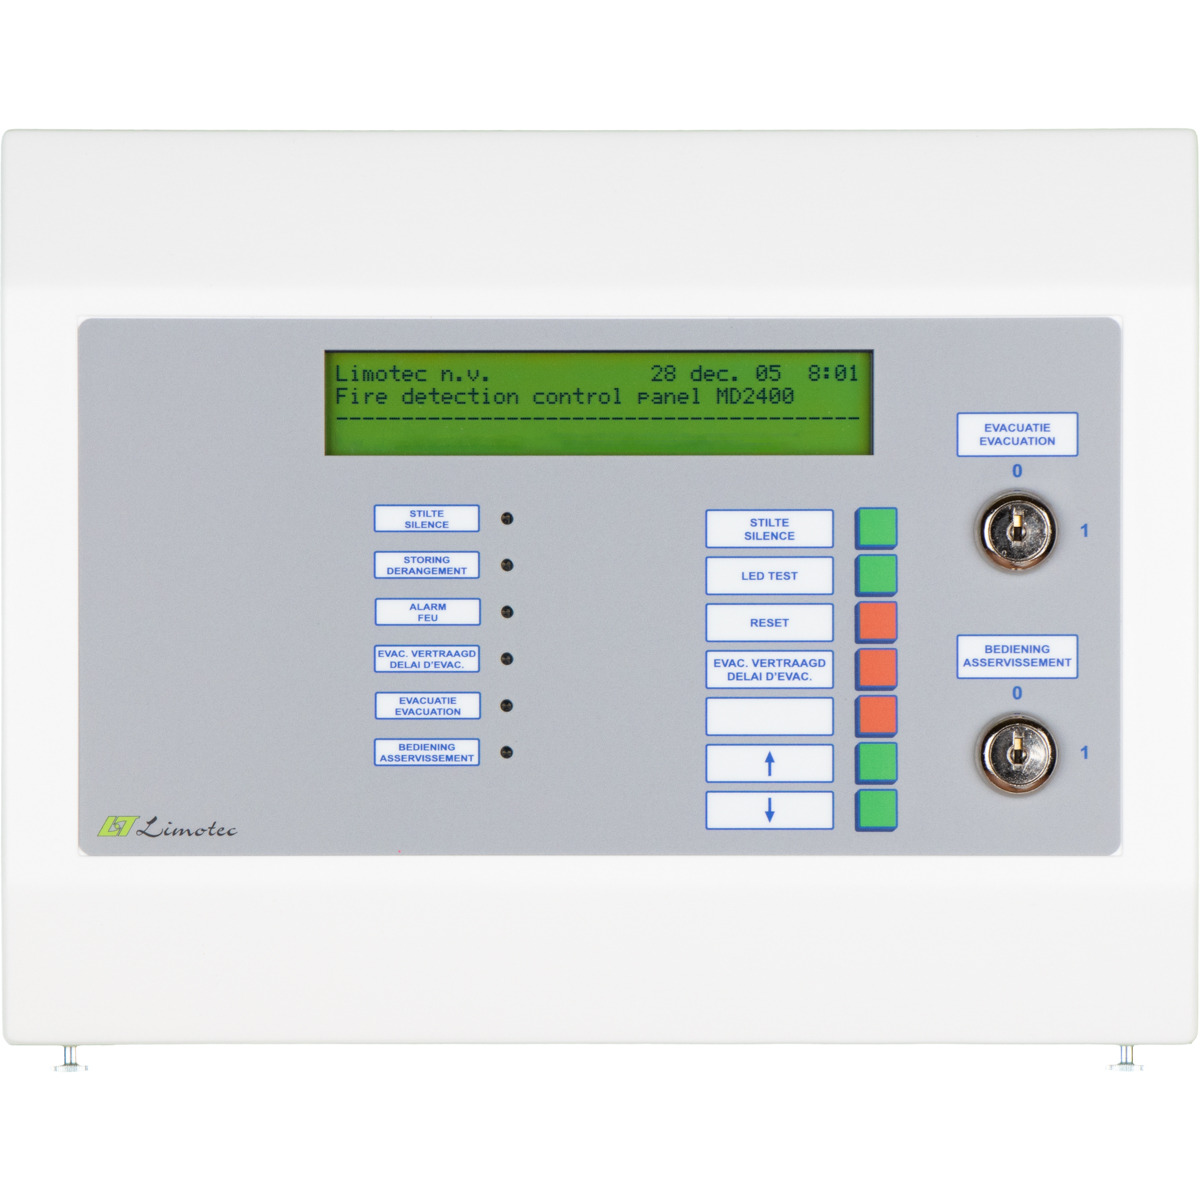 MD2400 redundant repeater panel